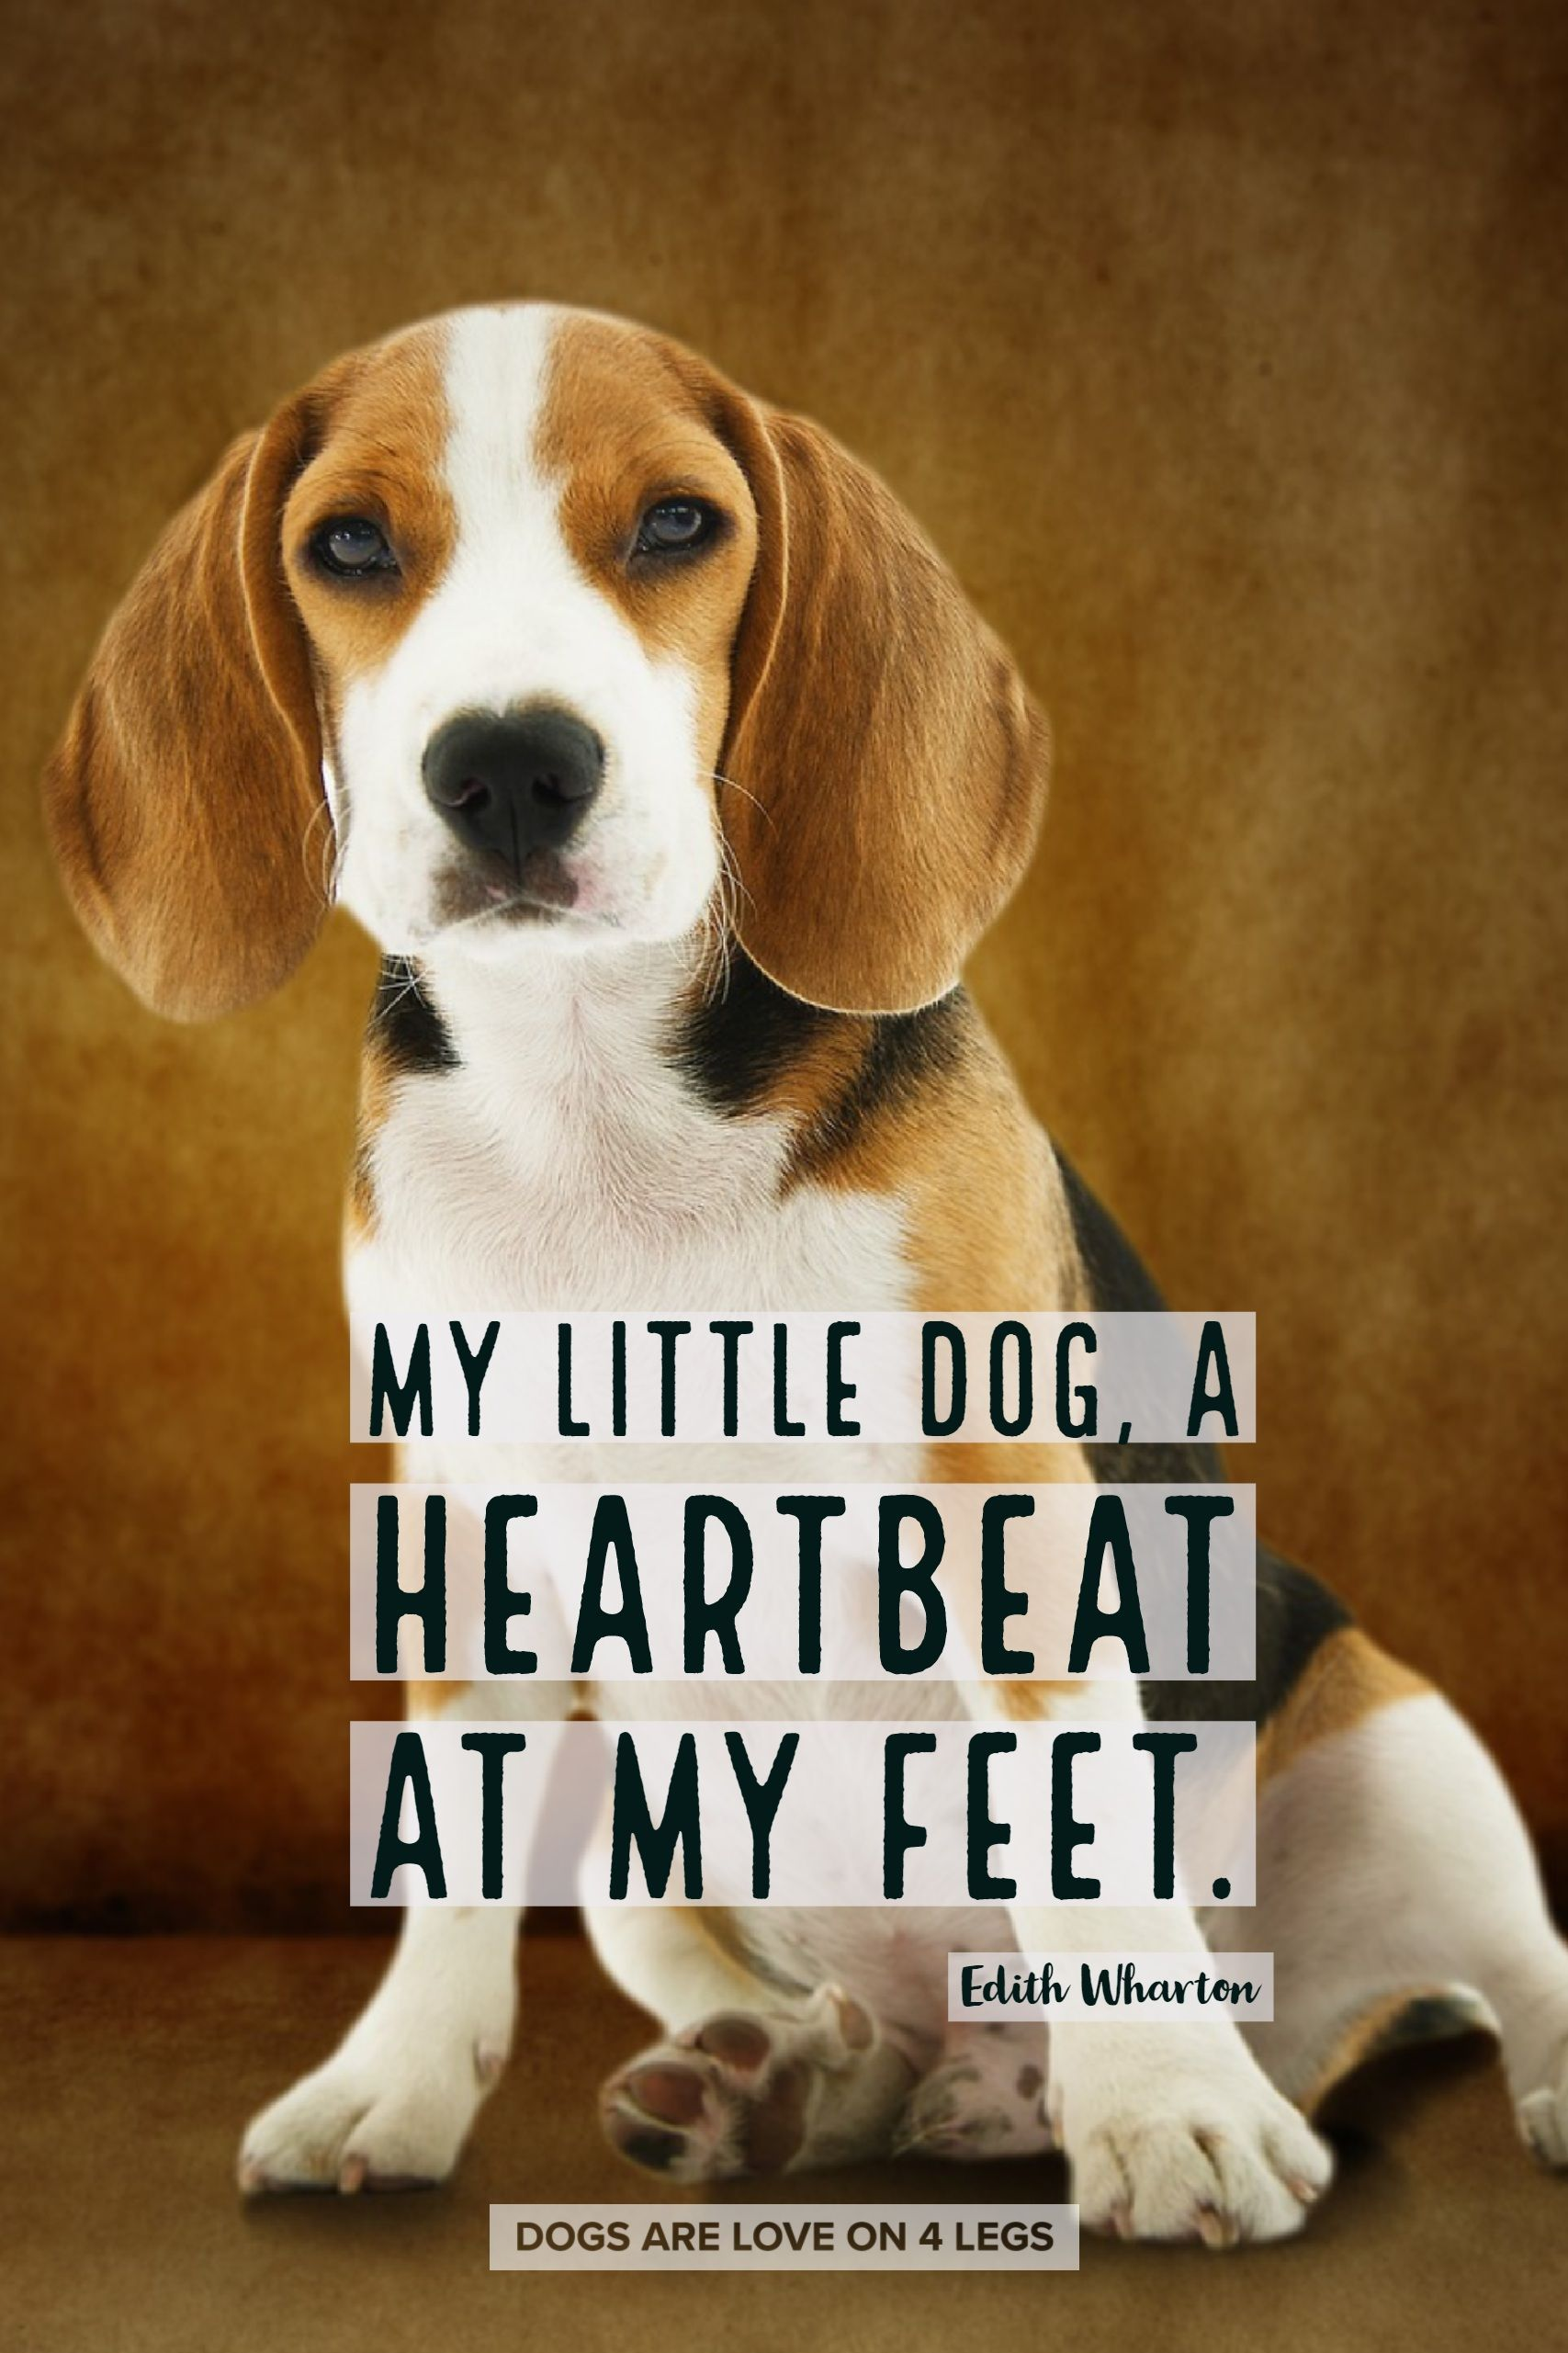 My Little Dog A Heartbeat At My Feet Dog Dog Quotes Inspirational Quotes Funny Quotes Life Quotes Dog Quotes Funny Dog Quotes Cute Dog Quotes